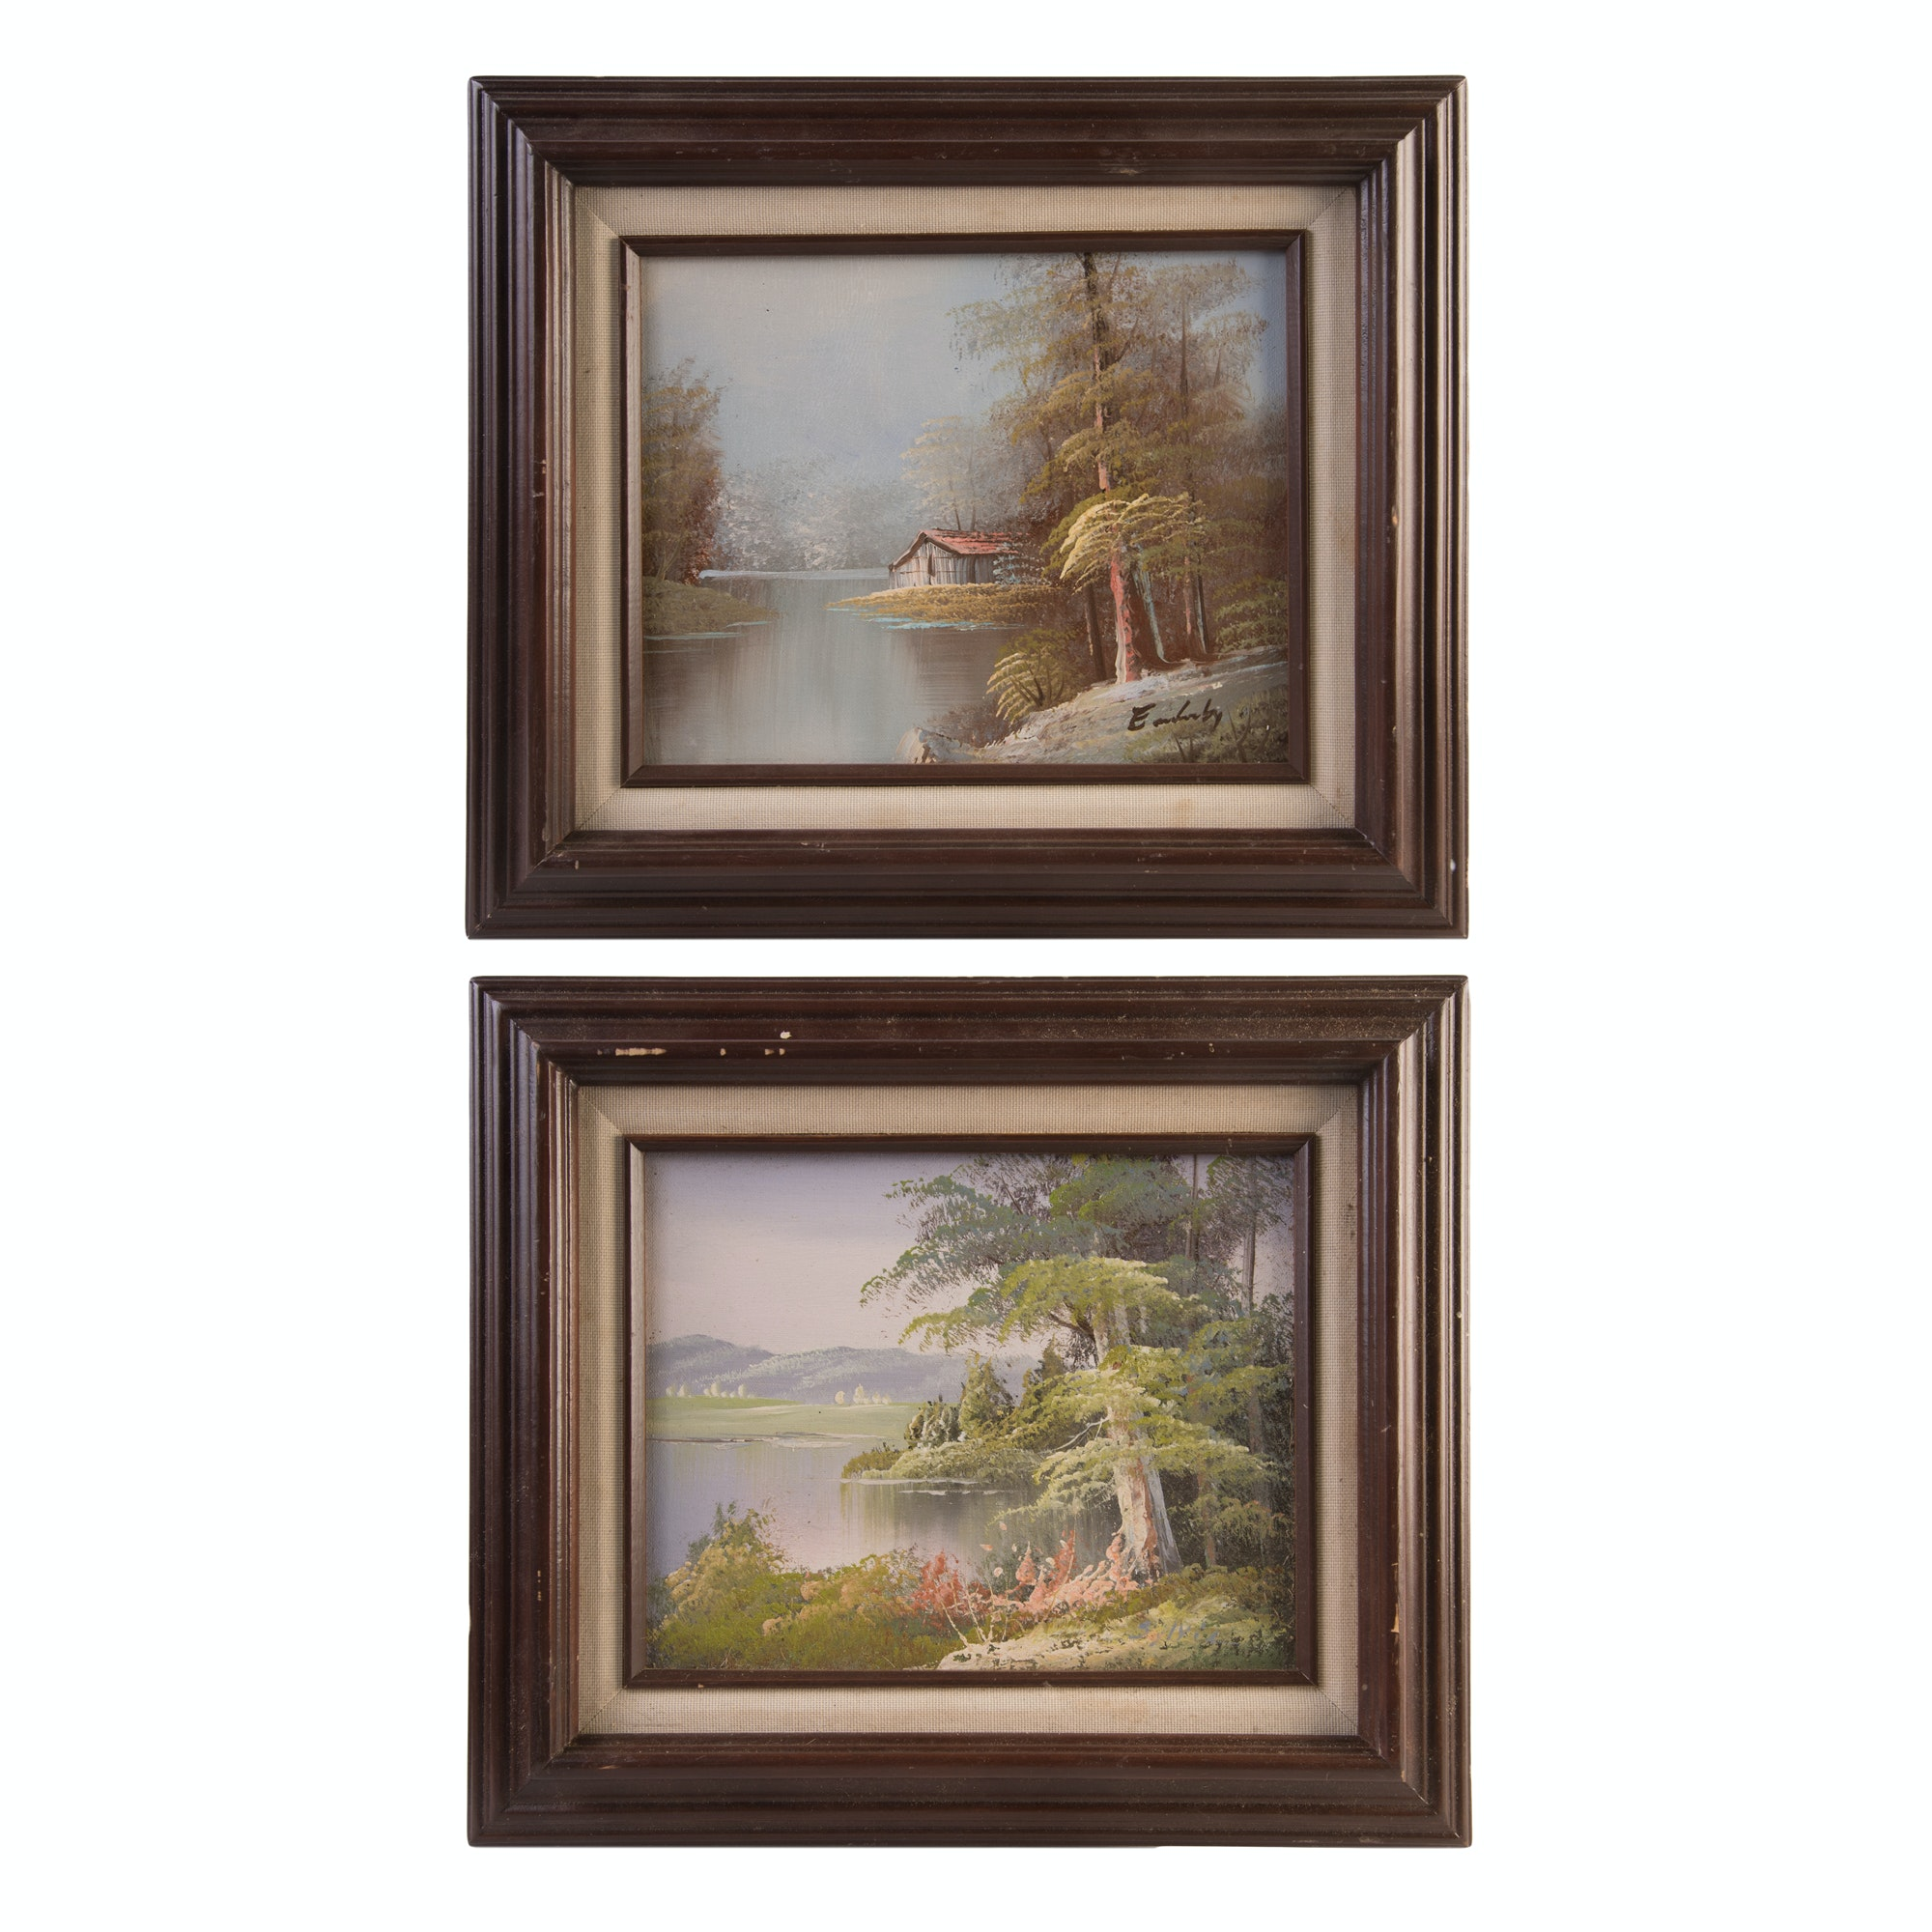 Original Signed Acrylic on Canvas Landscape Paintings